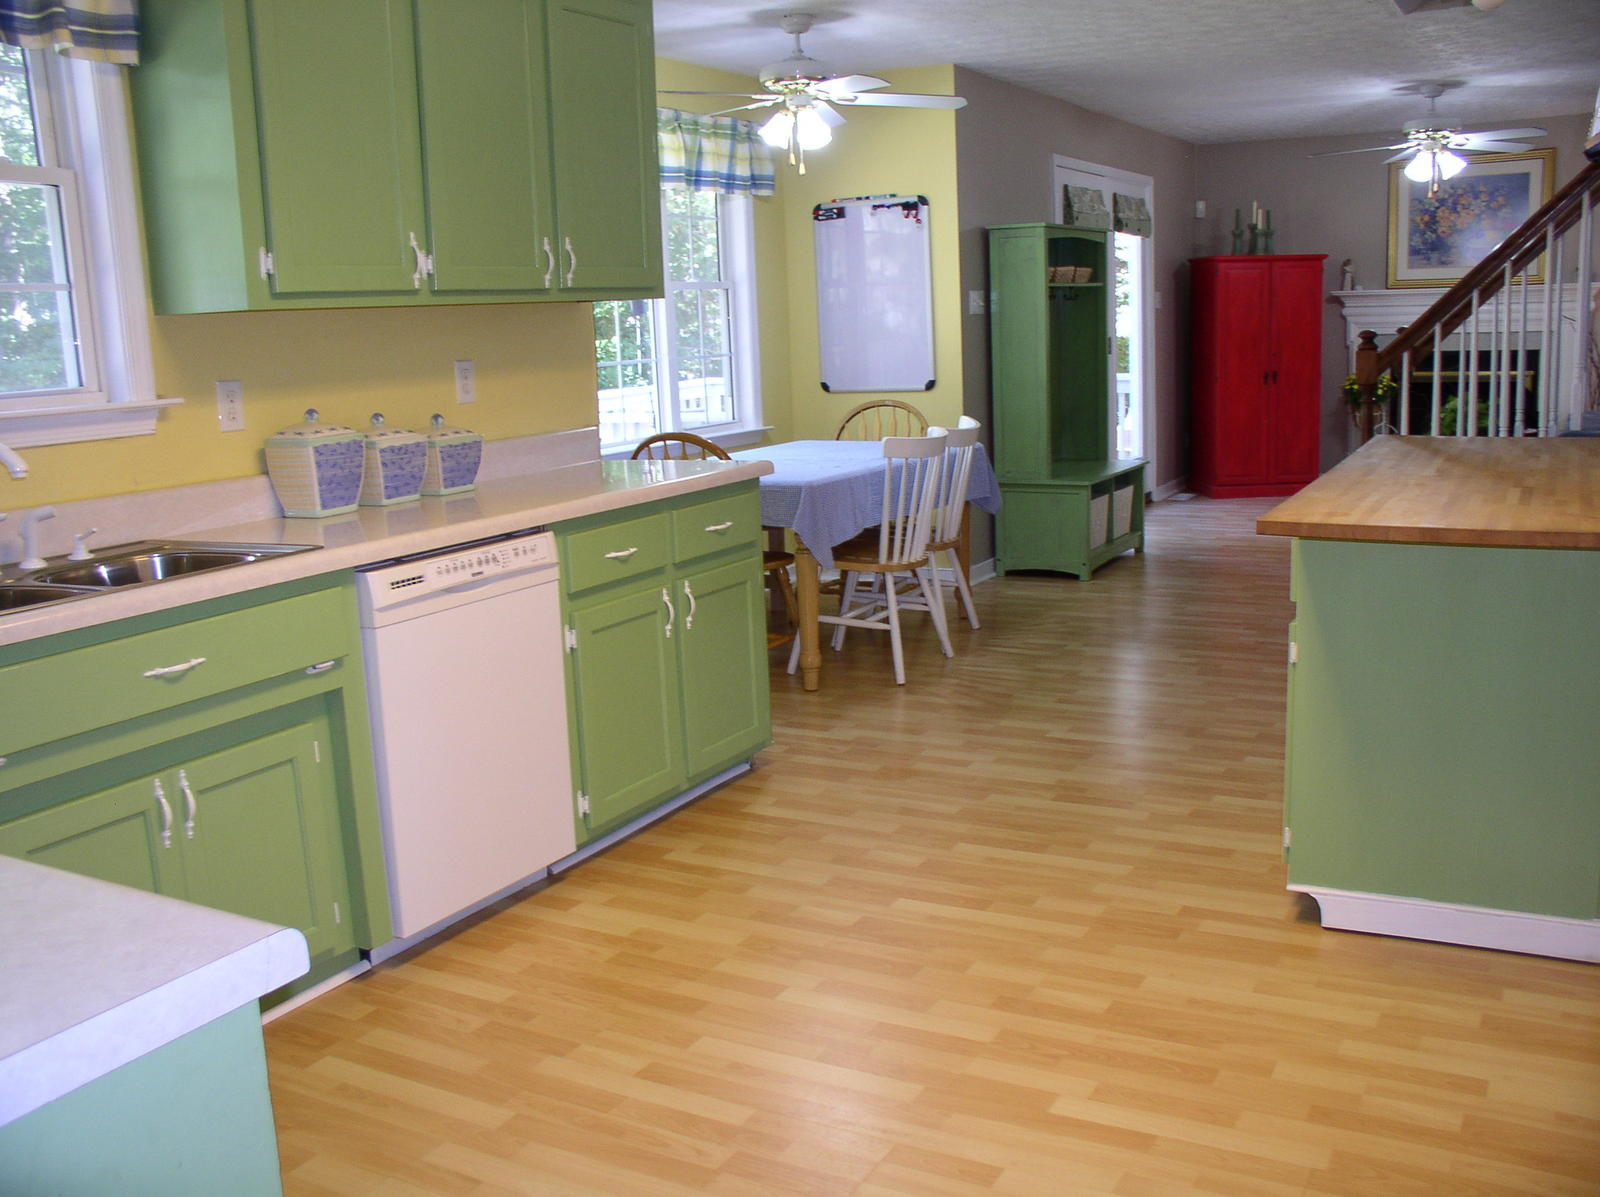 Painting your kitchen cabinets painting tips from the pros for Kitchen cabinets painted